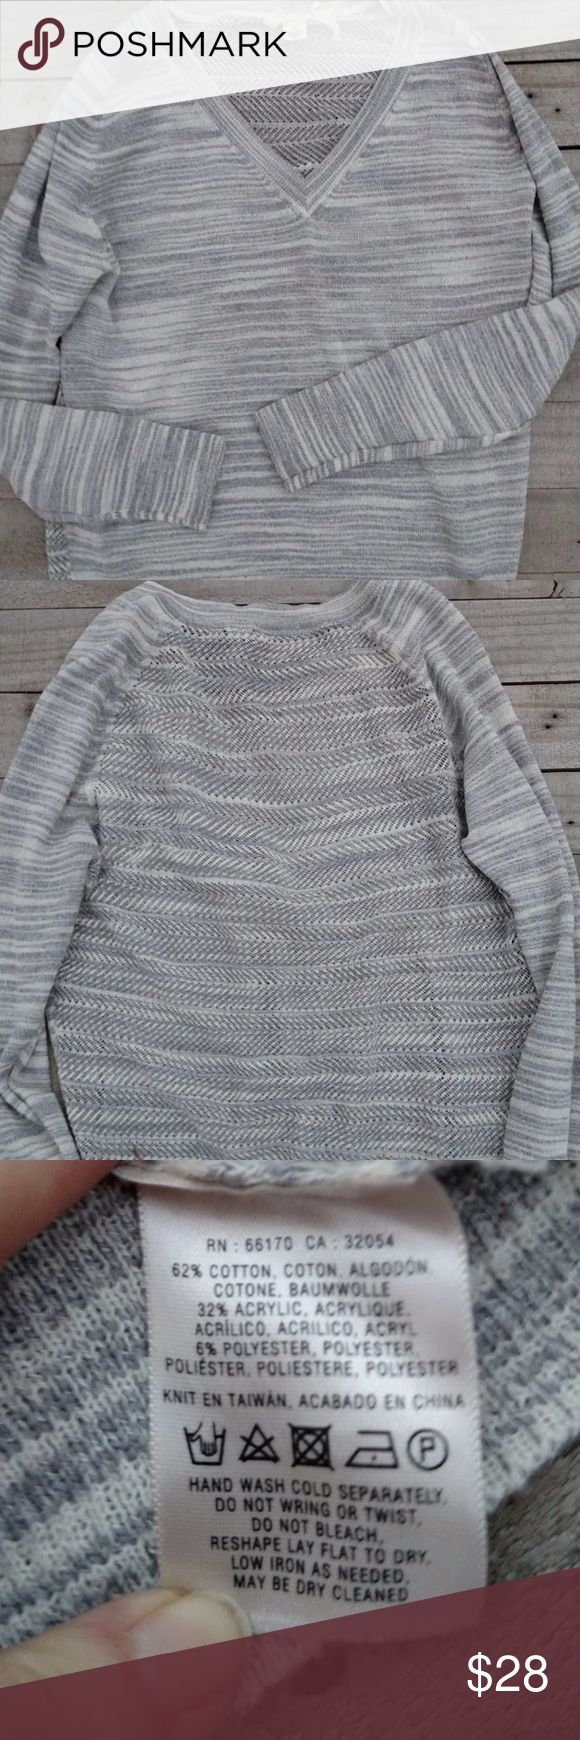 "V neck sweater by Moth from Anthropologie Semi-sheer v-neck sweater by Moth from Anthropologie.  Sweater is size medium in like-new EUC.  Sweater is made of cotton, acrylic, and polyester blend and measures 20"" across the chest, 23"" from shoulder to hem Anthropologie Sweaters V-Necks"